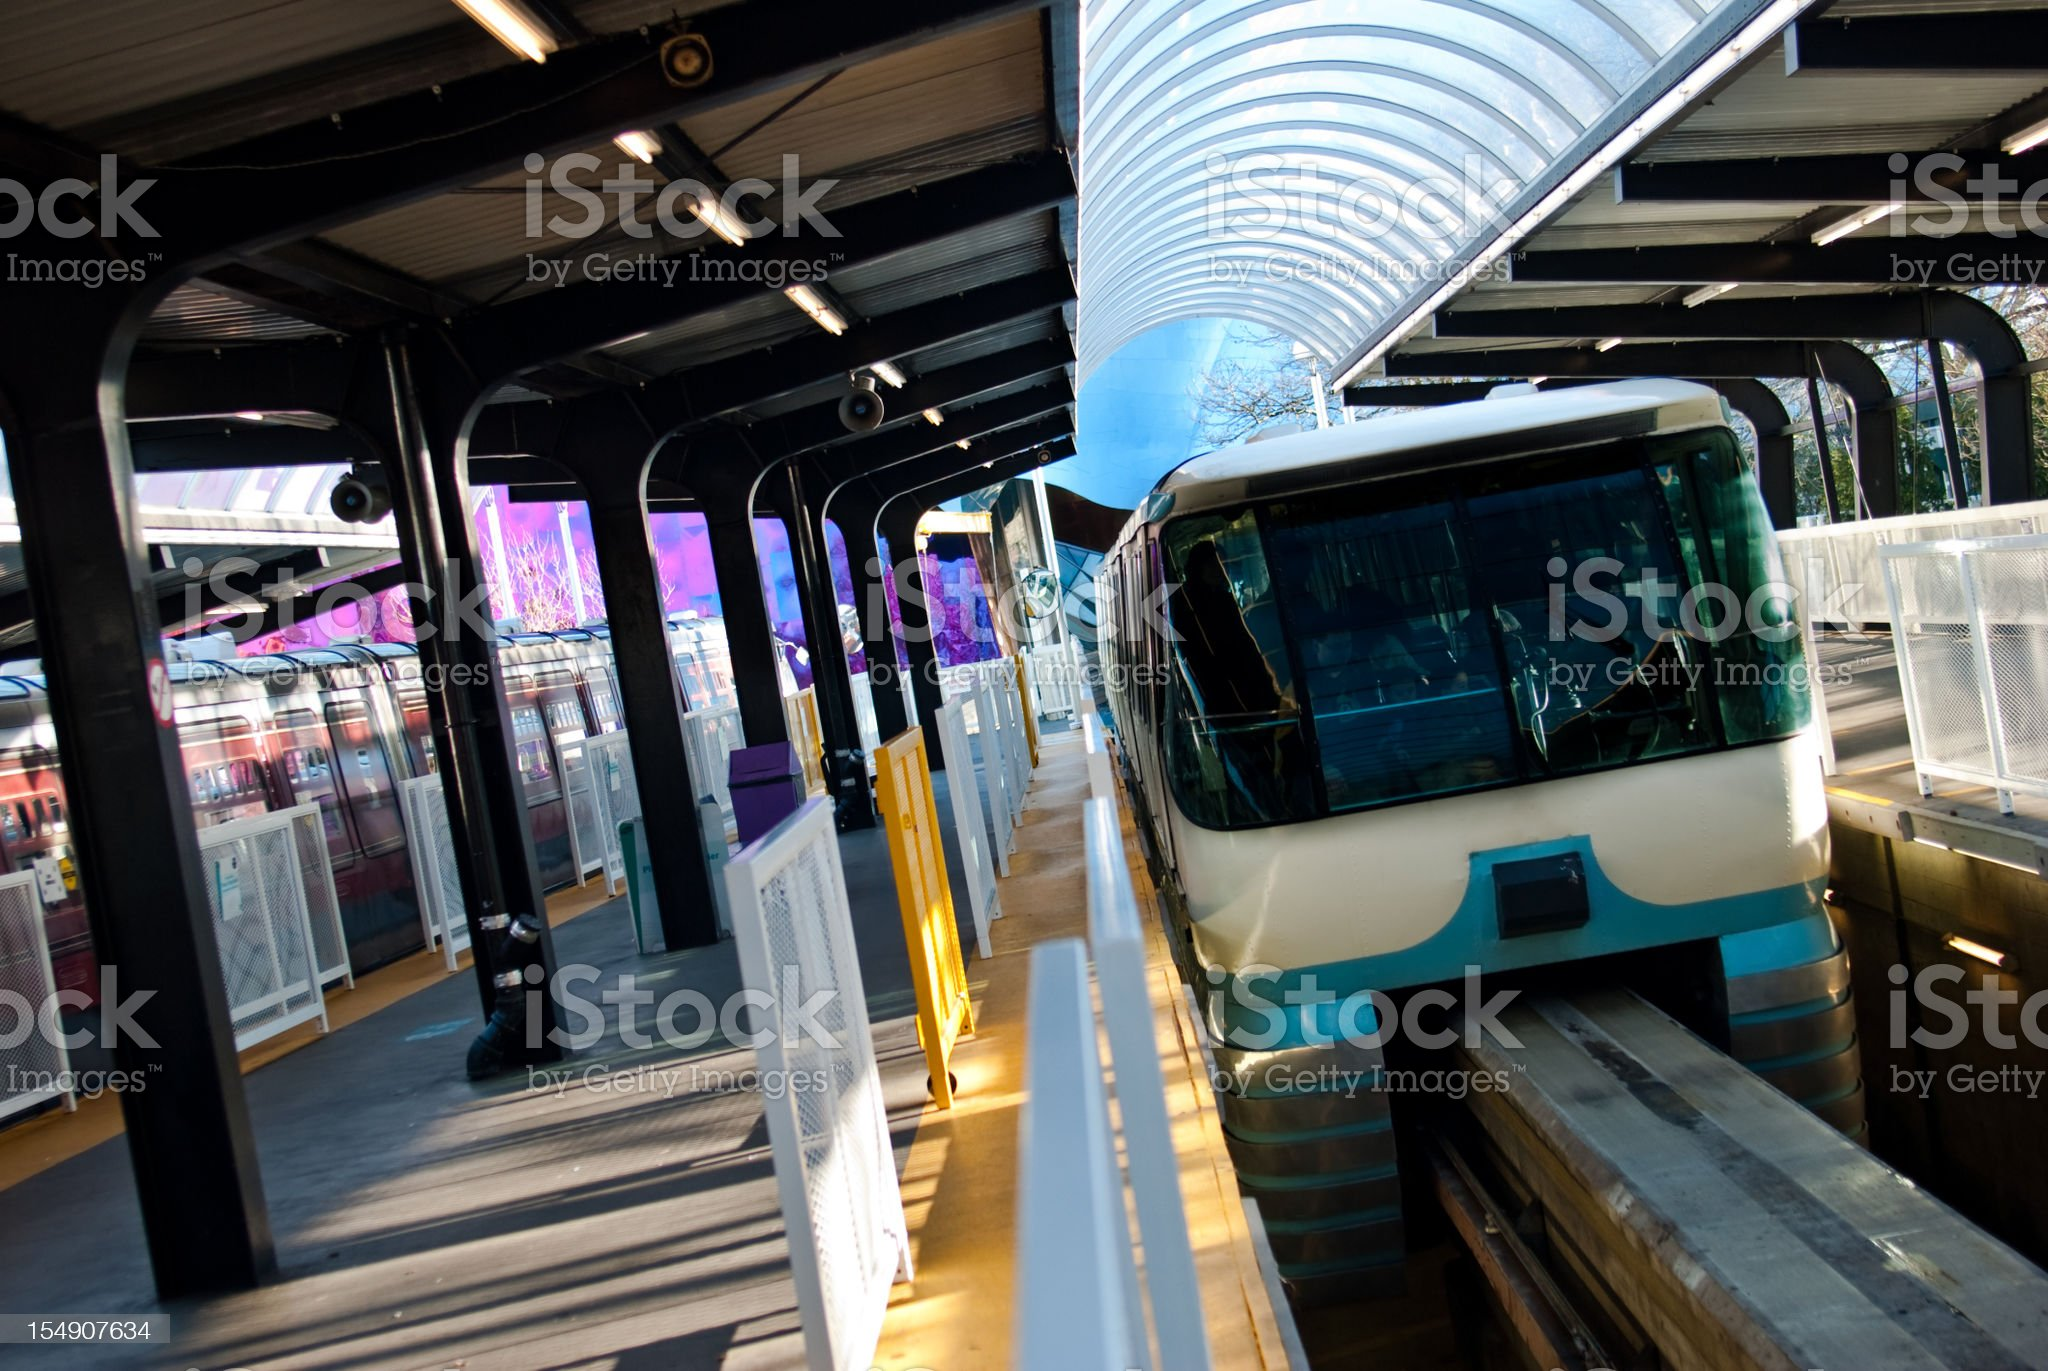 Seattle Monorail pulling into station royalty-free stock photo